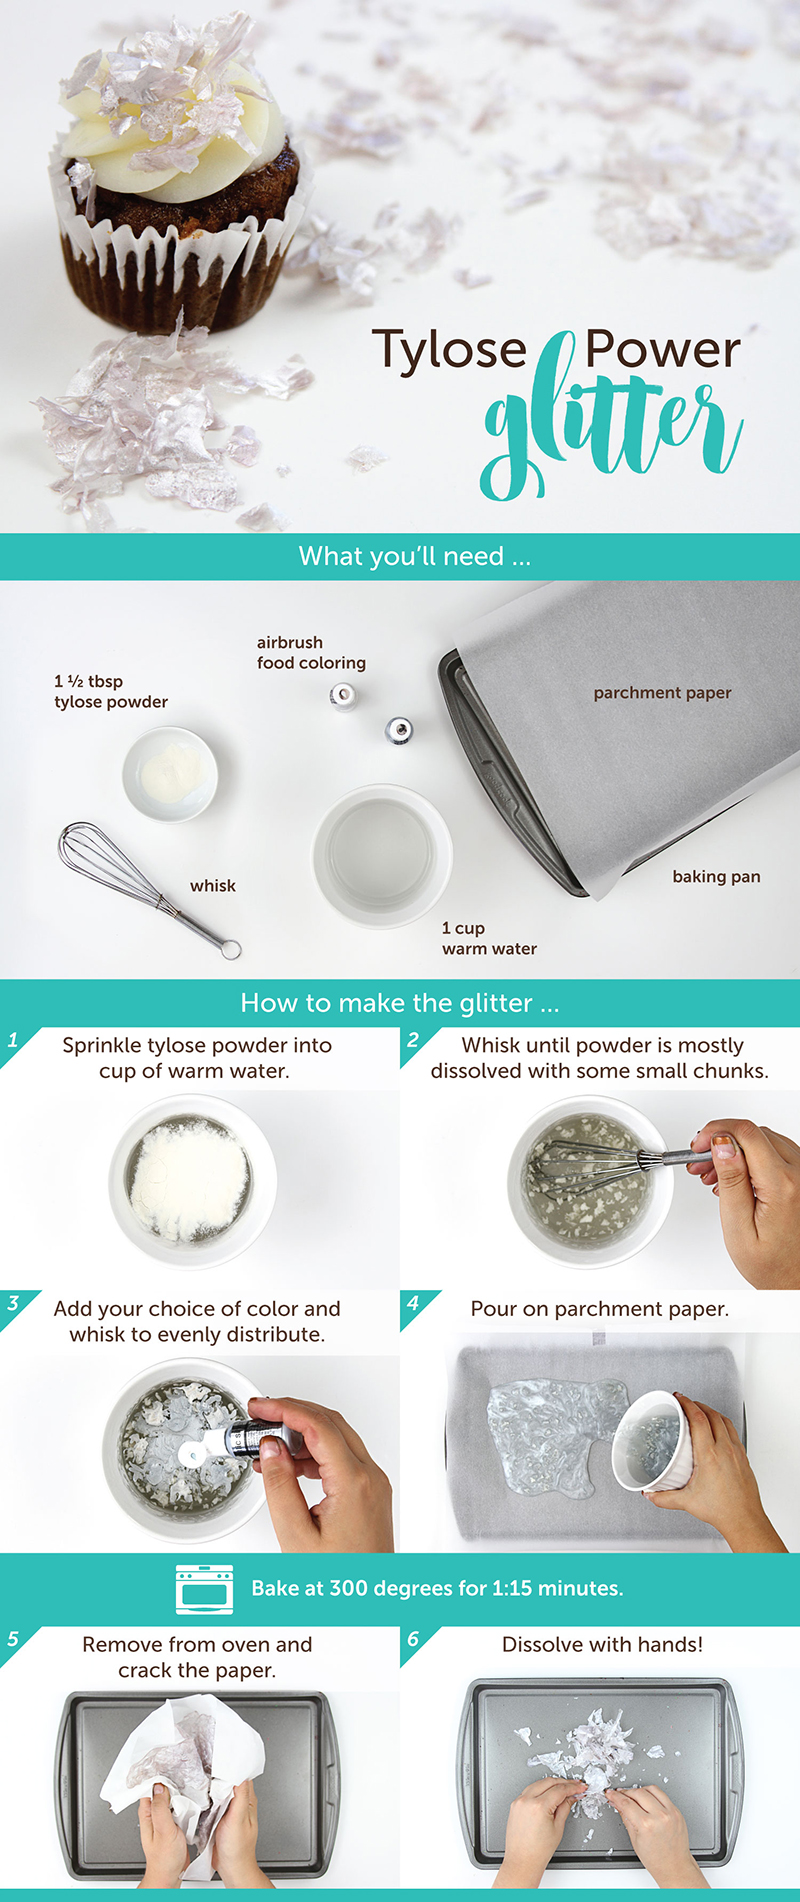 How to make tylose powder based edible glitter.